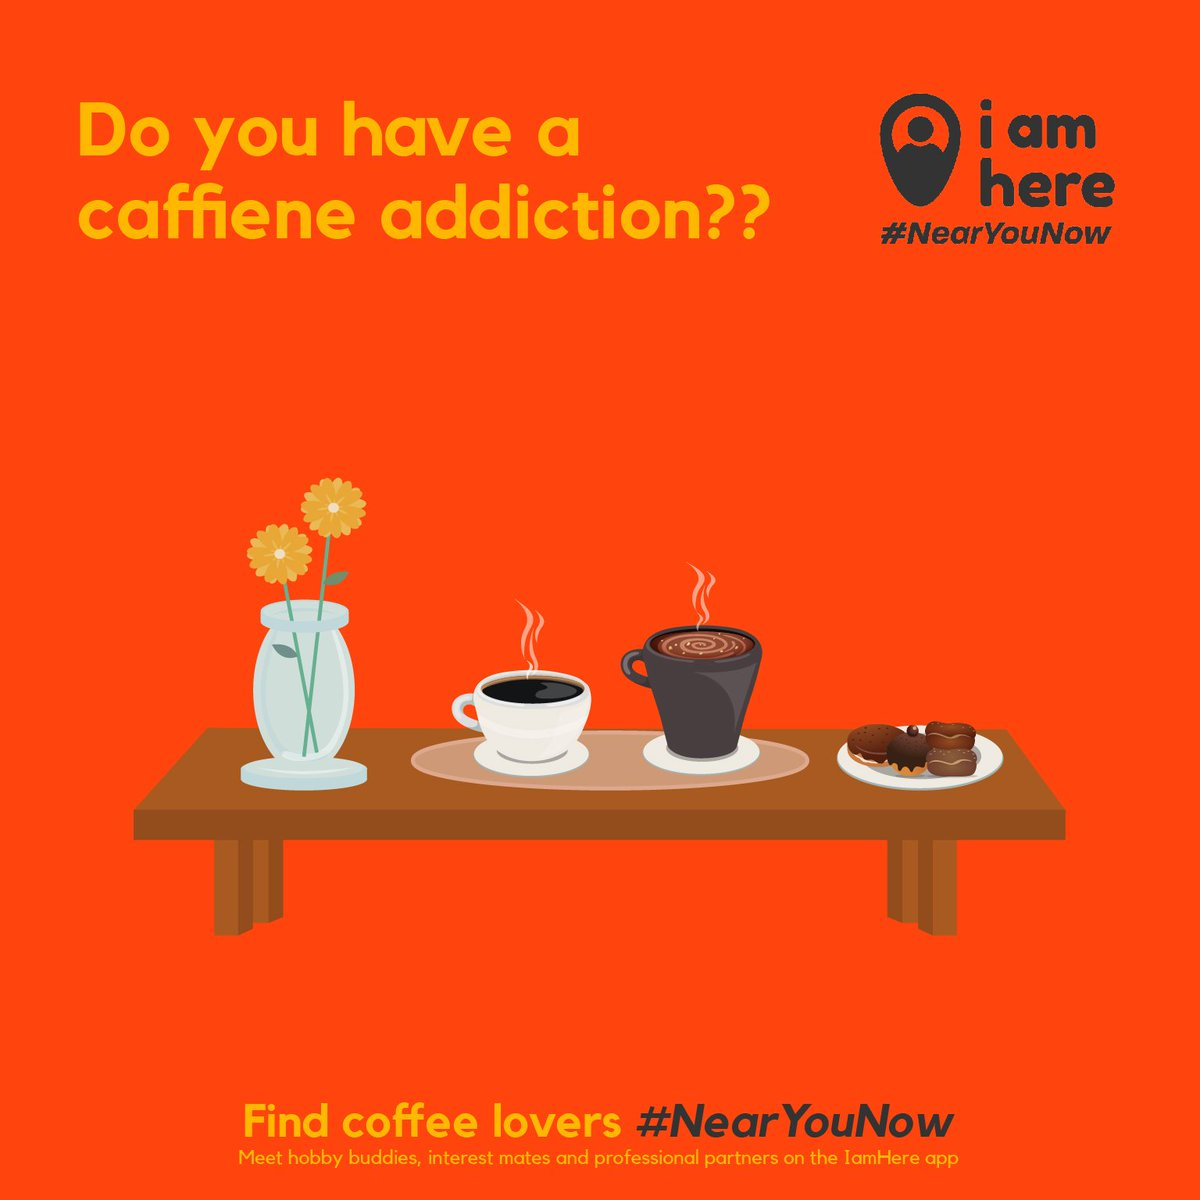 Connect with company over coffee!! Find fellow coffee lovers #NearYouNow on the IamHere app!! ☕☕ . Install the app to explore more #NearYouNow https://bit.ly/IamHereApp  . #iamhere #nearmenow #people #community #friends #neighbourhood #likemindedpeople #buddy